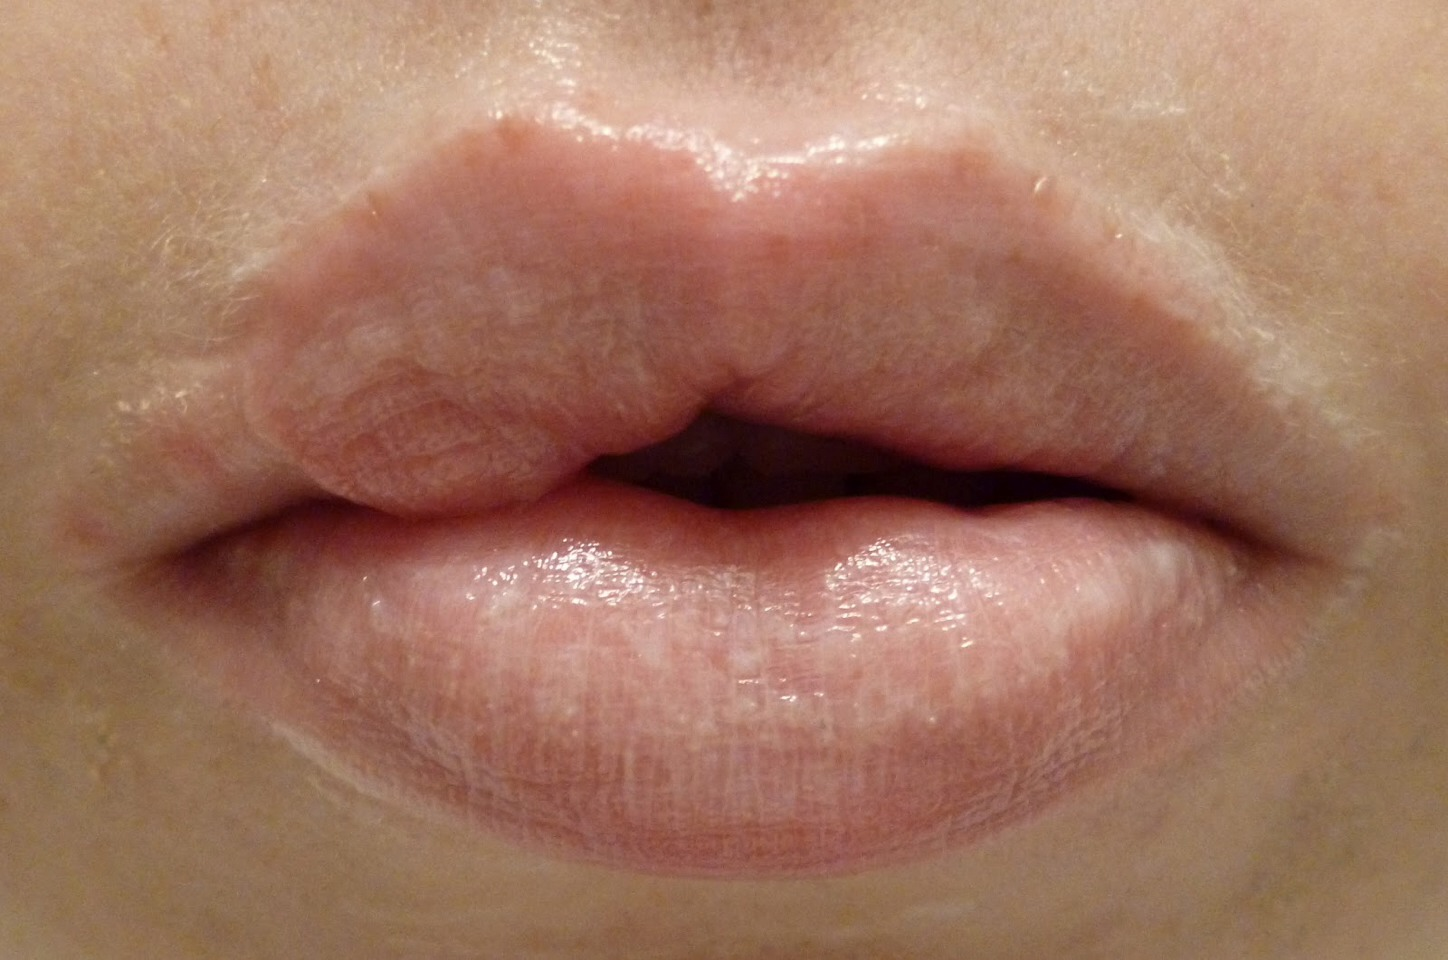 Apply butter to lips every night before sleeping